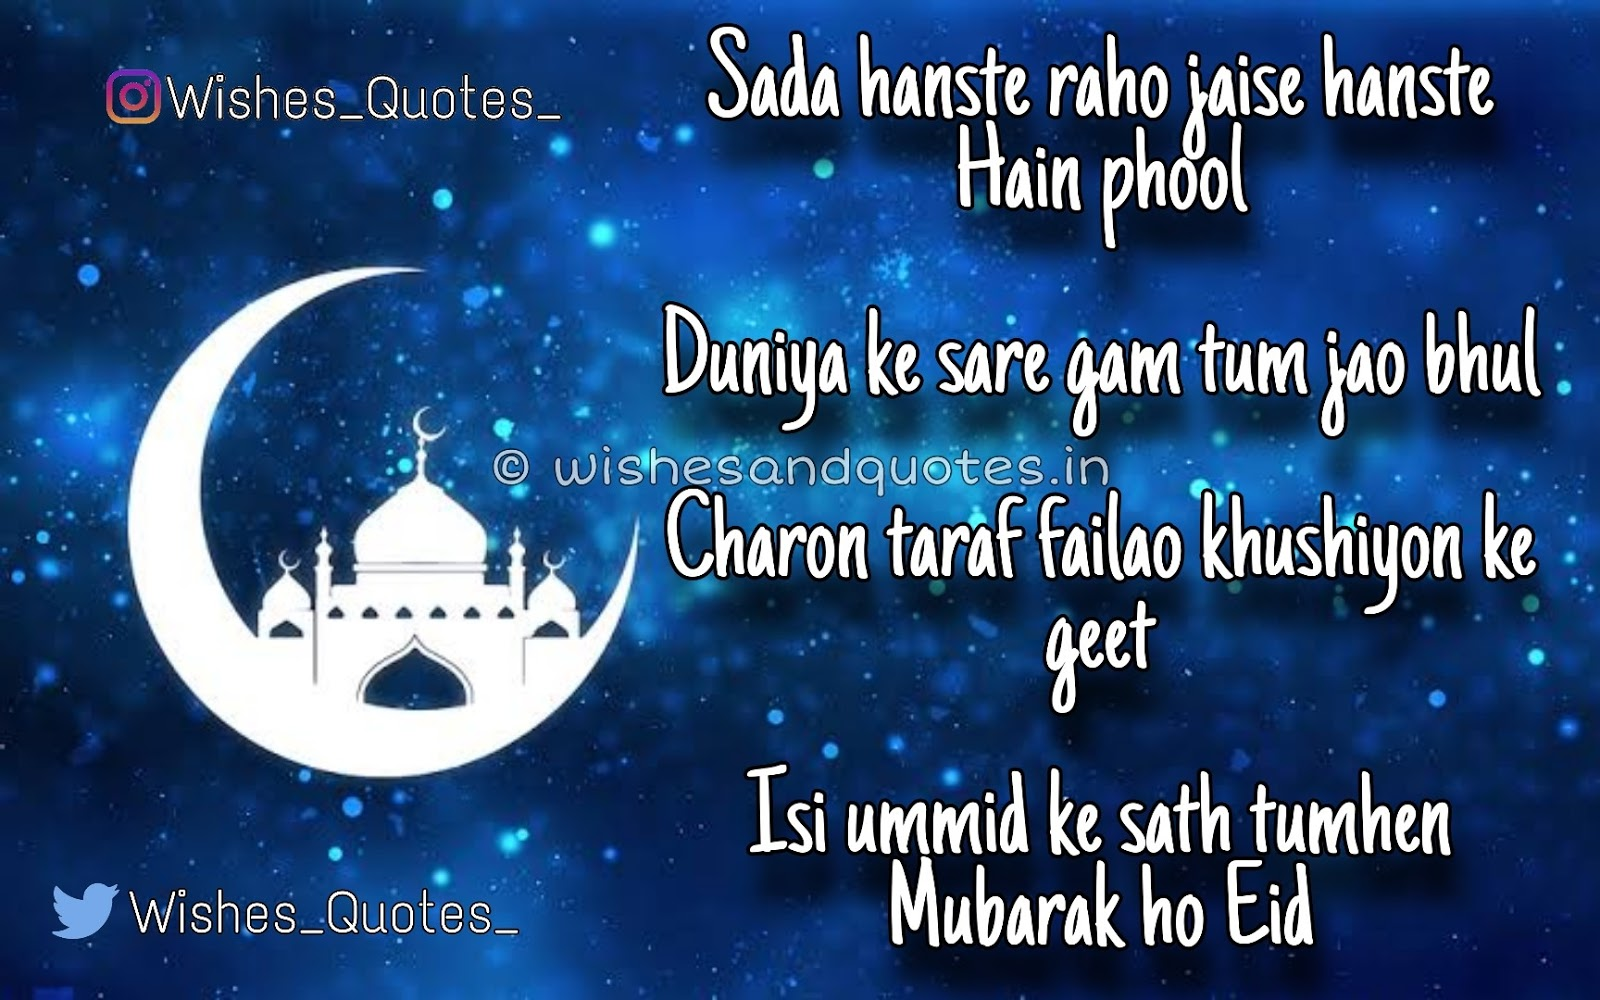 20 Wishes And Quotes For Happy Eid Mubarak Wishes 2021 Wishes And Quotes